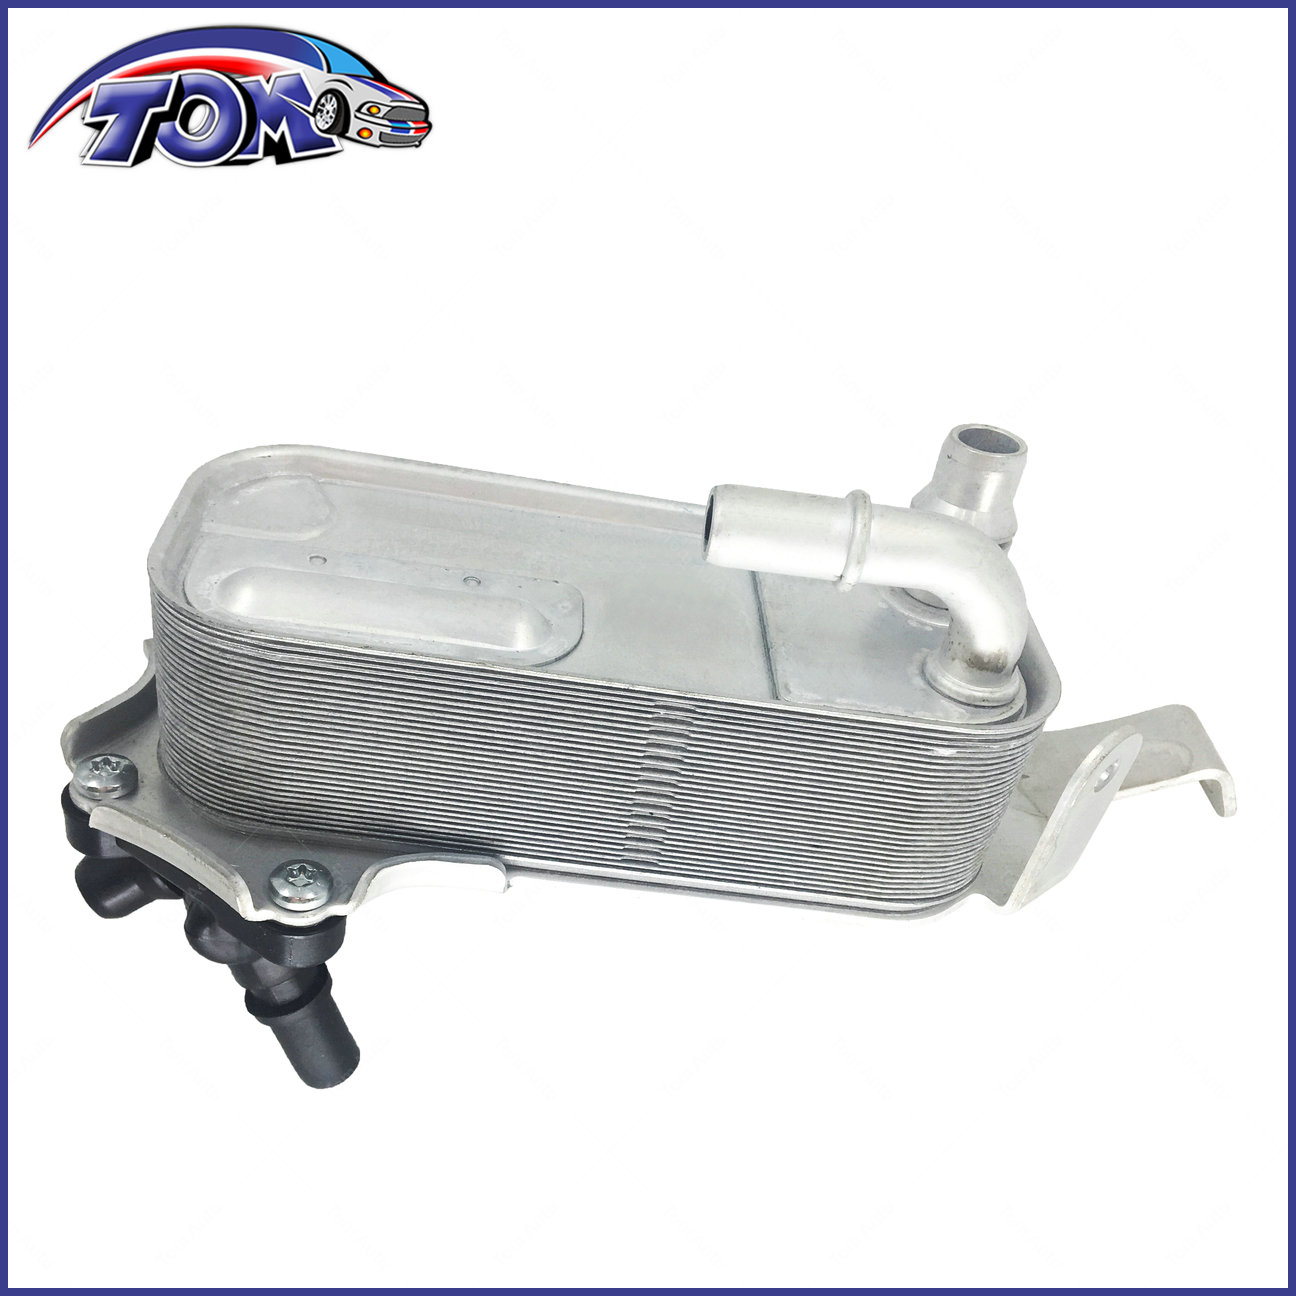 BRAND NEW TRANSMISSION OIL COOLER W/BASE FOR BMW X3 X4 2